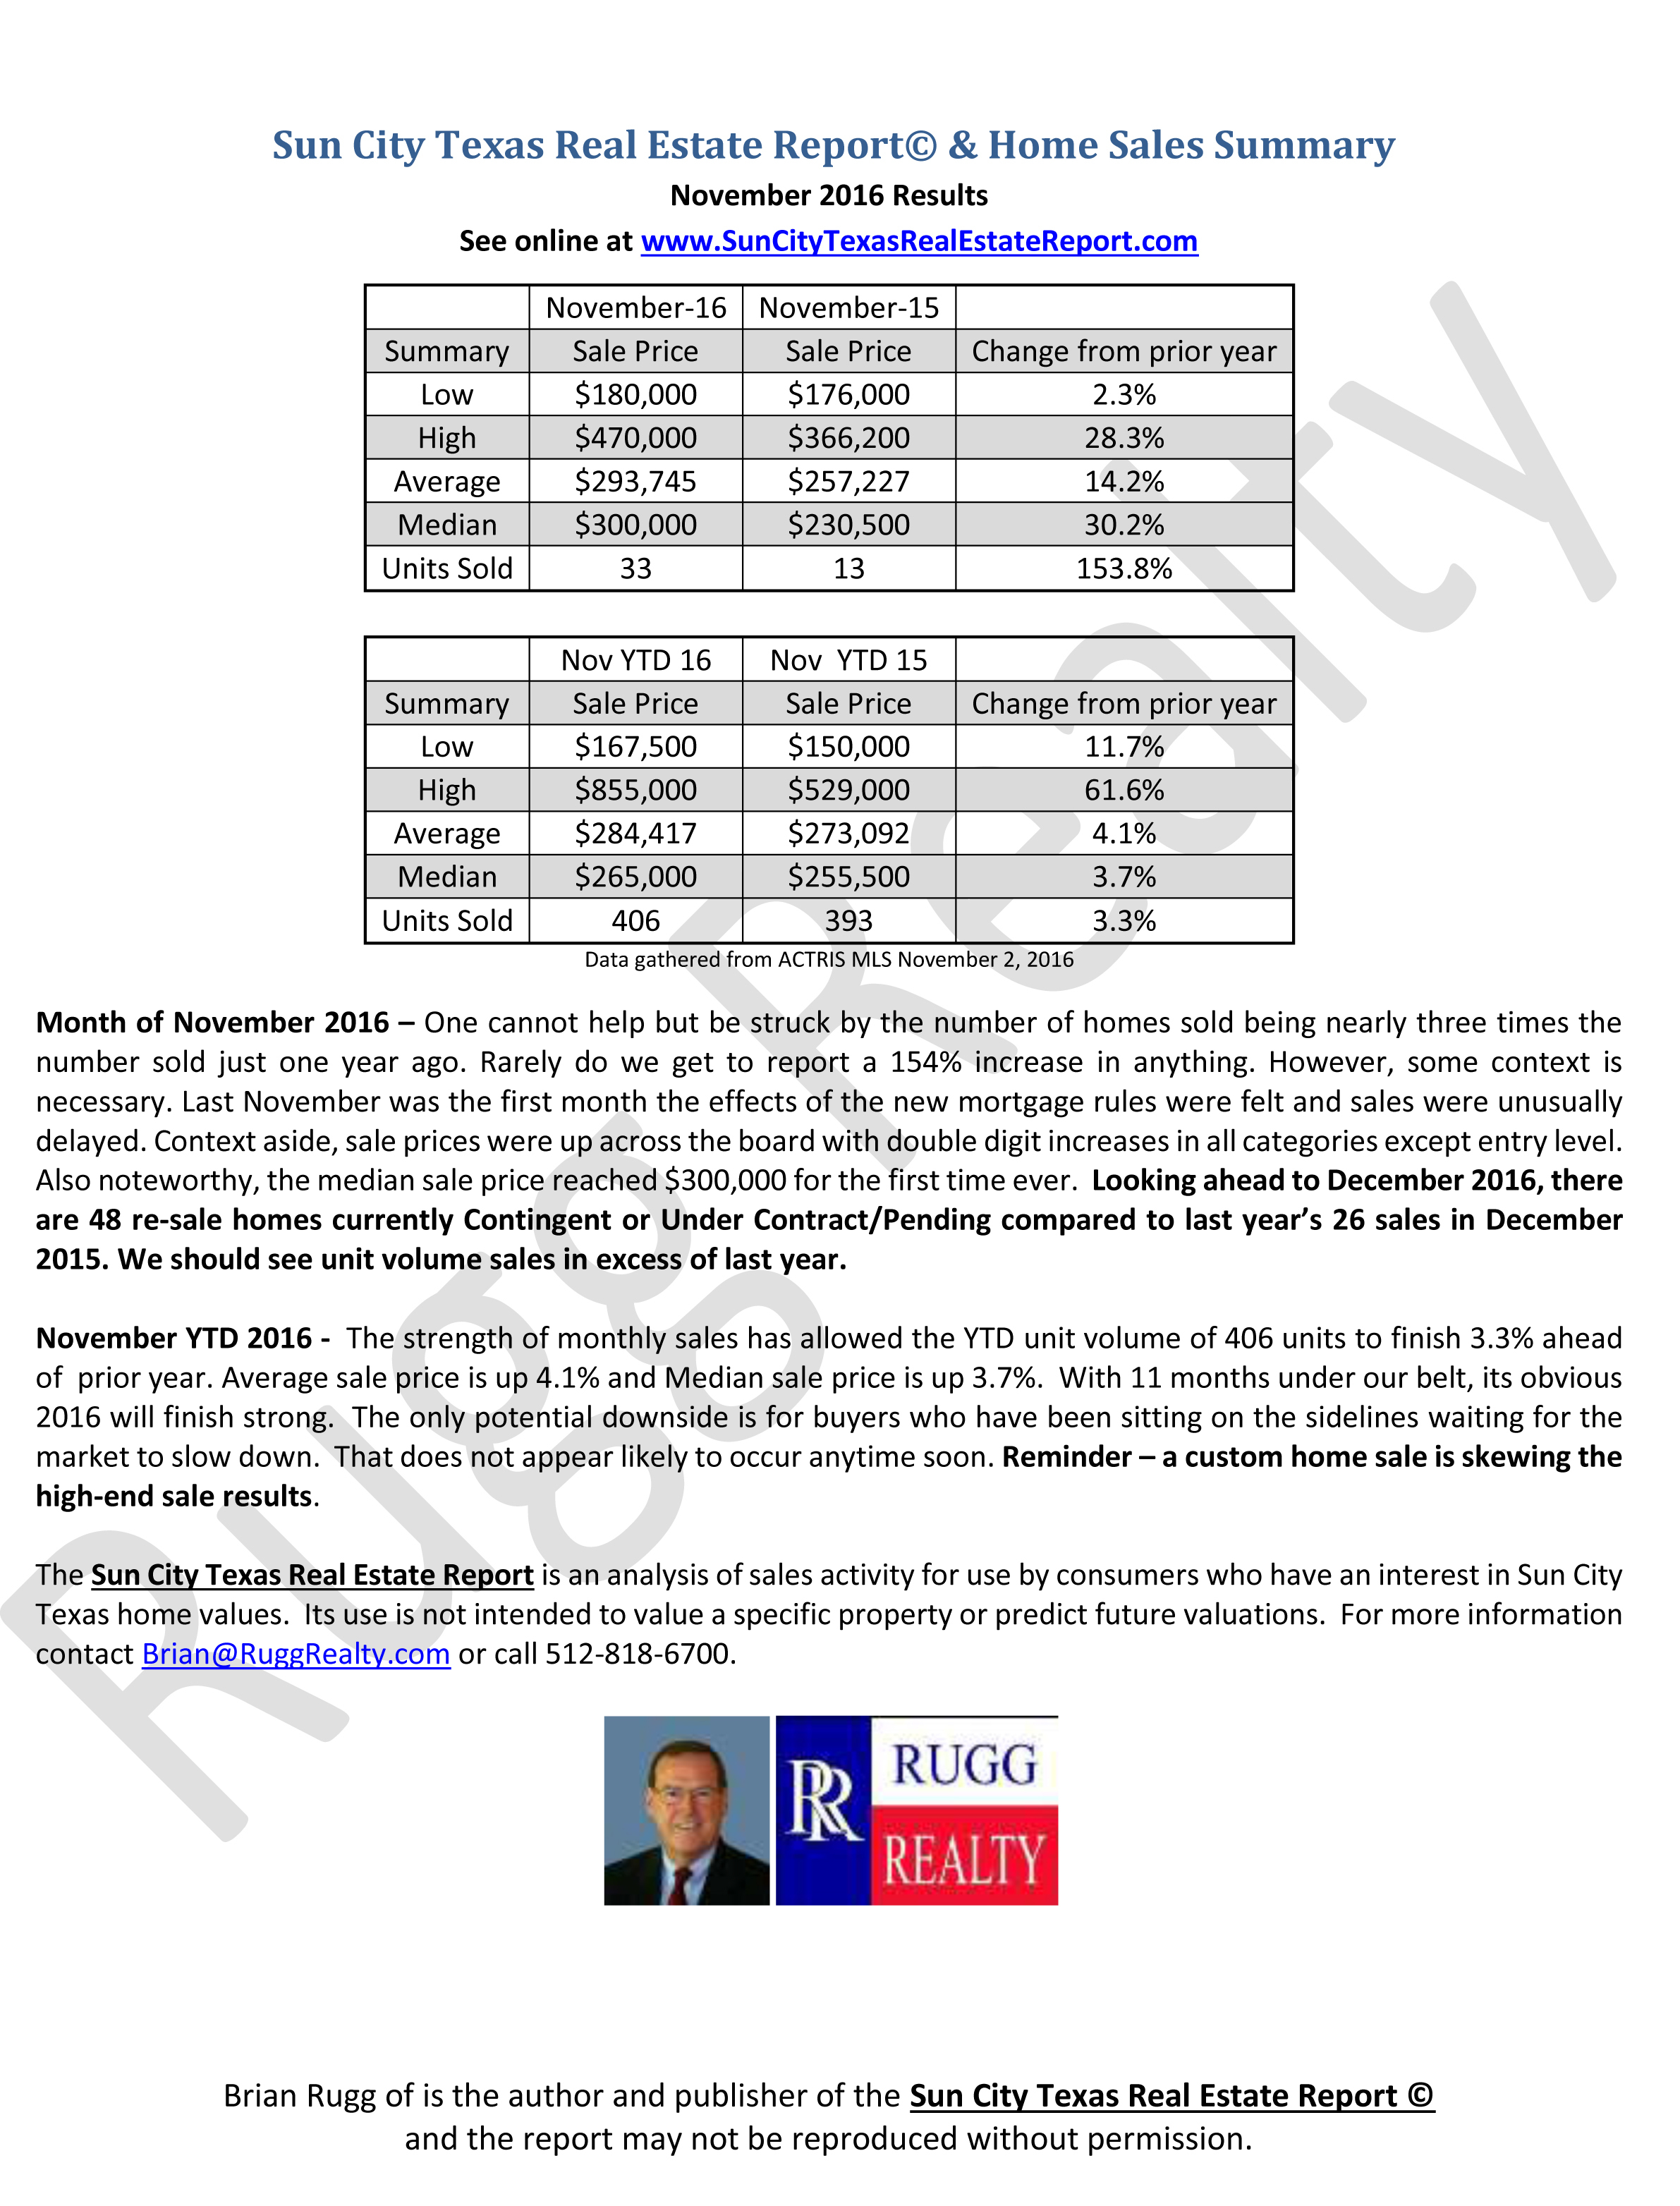 November Sun City TX Real Estate Report Market Data From Rugg Realty